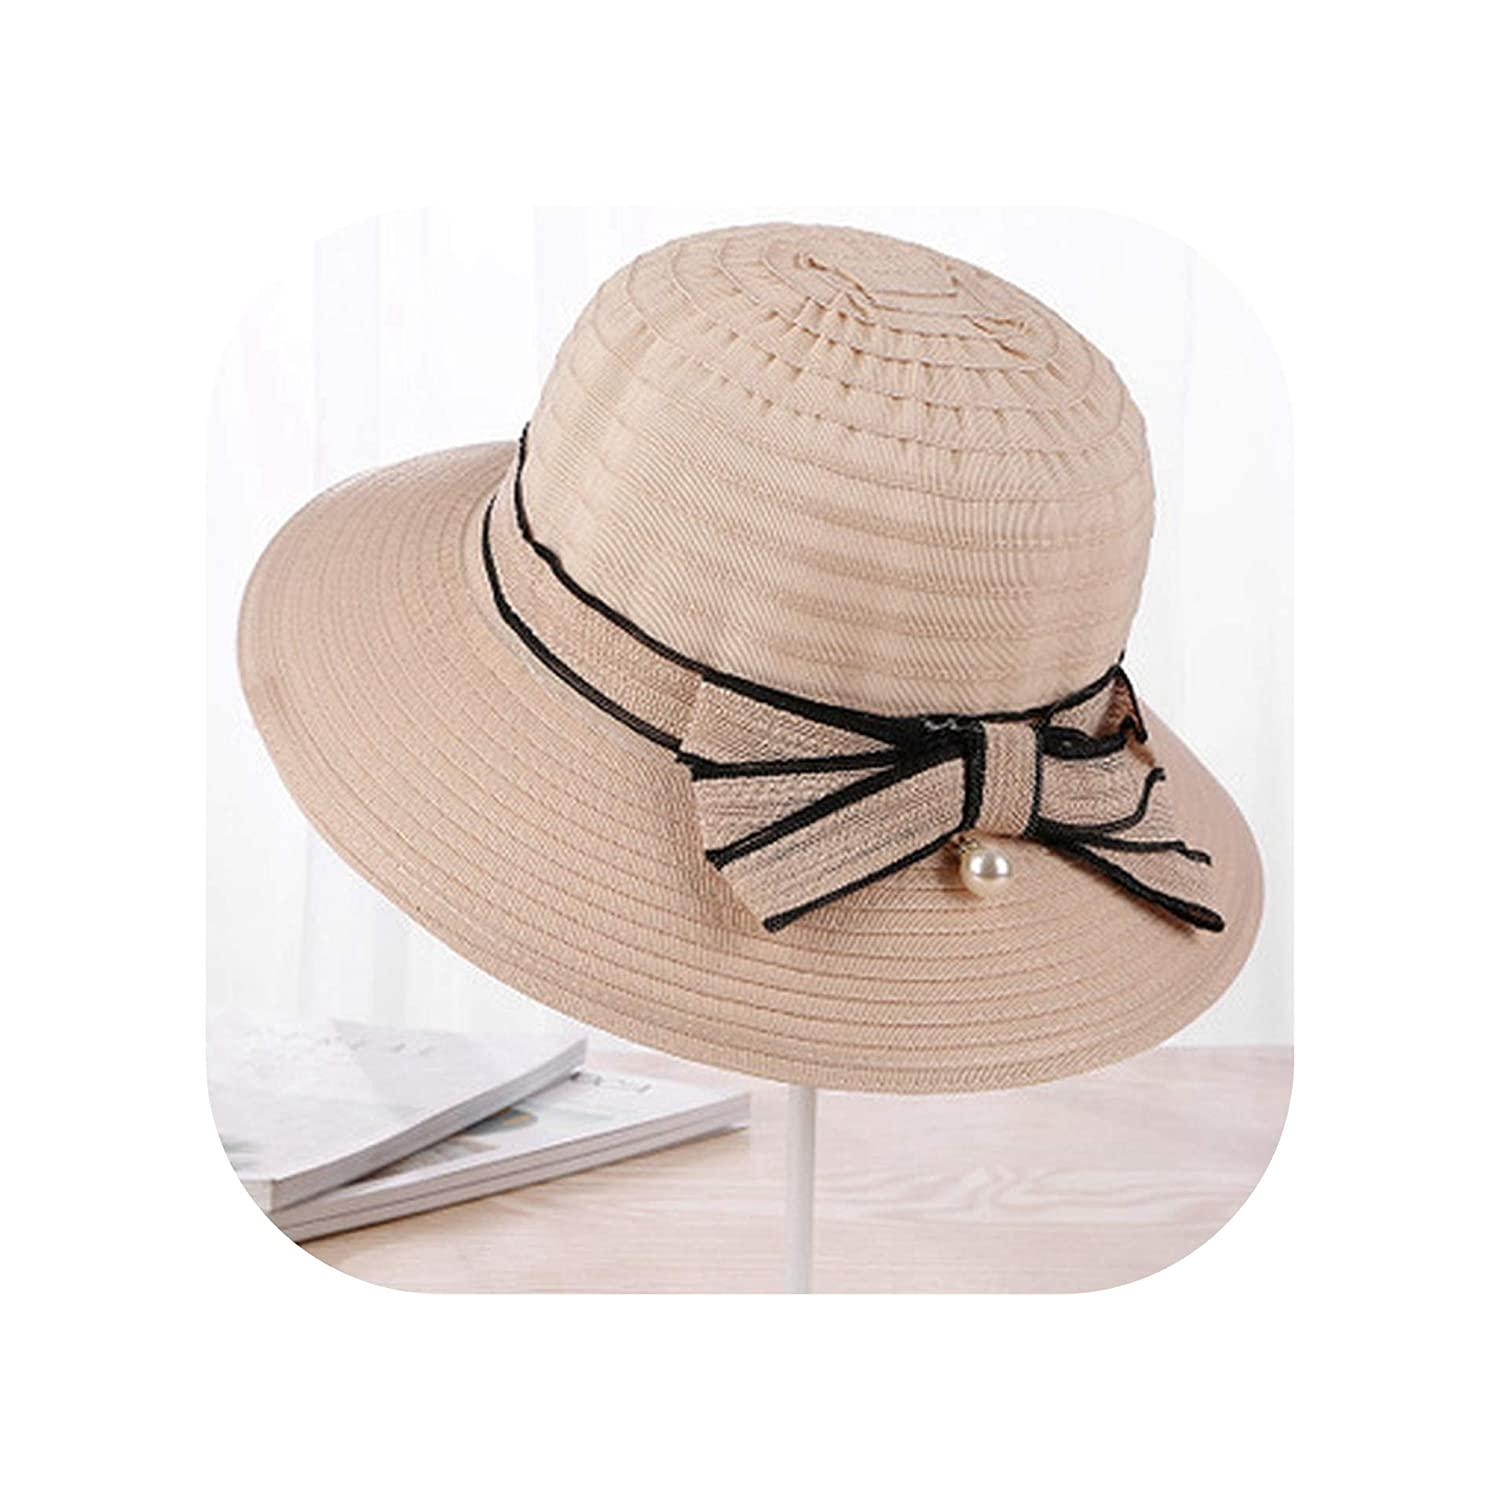 8522464a0 Spring Summer Hats for Women Sun Hat Cloth Bow Fisherman Hat Female ...